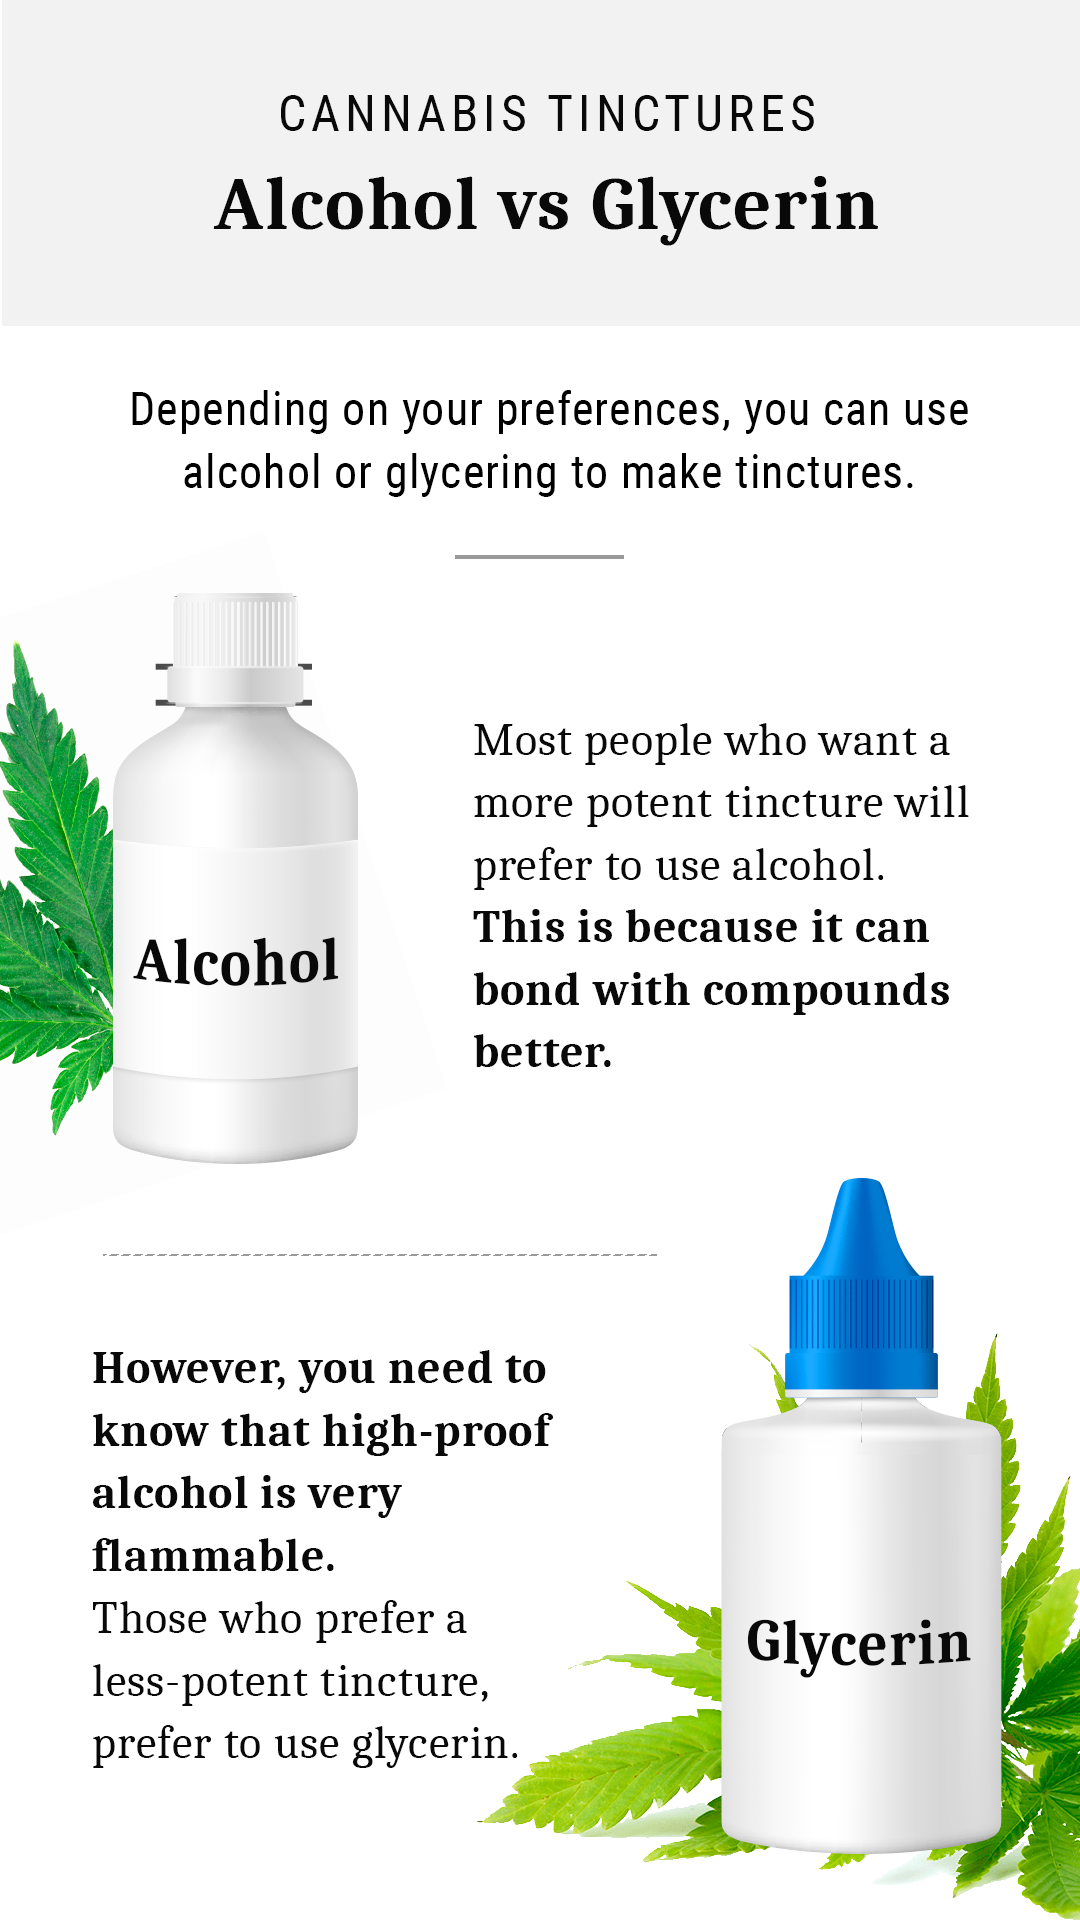 Cannabis Tinctures - Alcohol vs Glycerin - Hoja